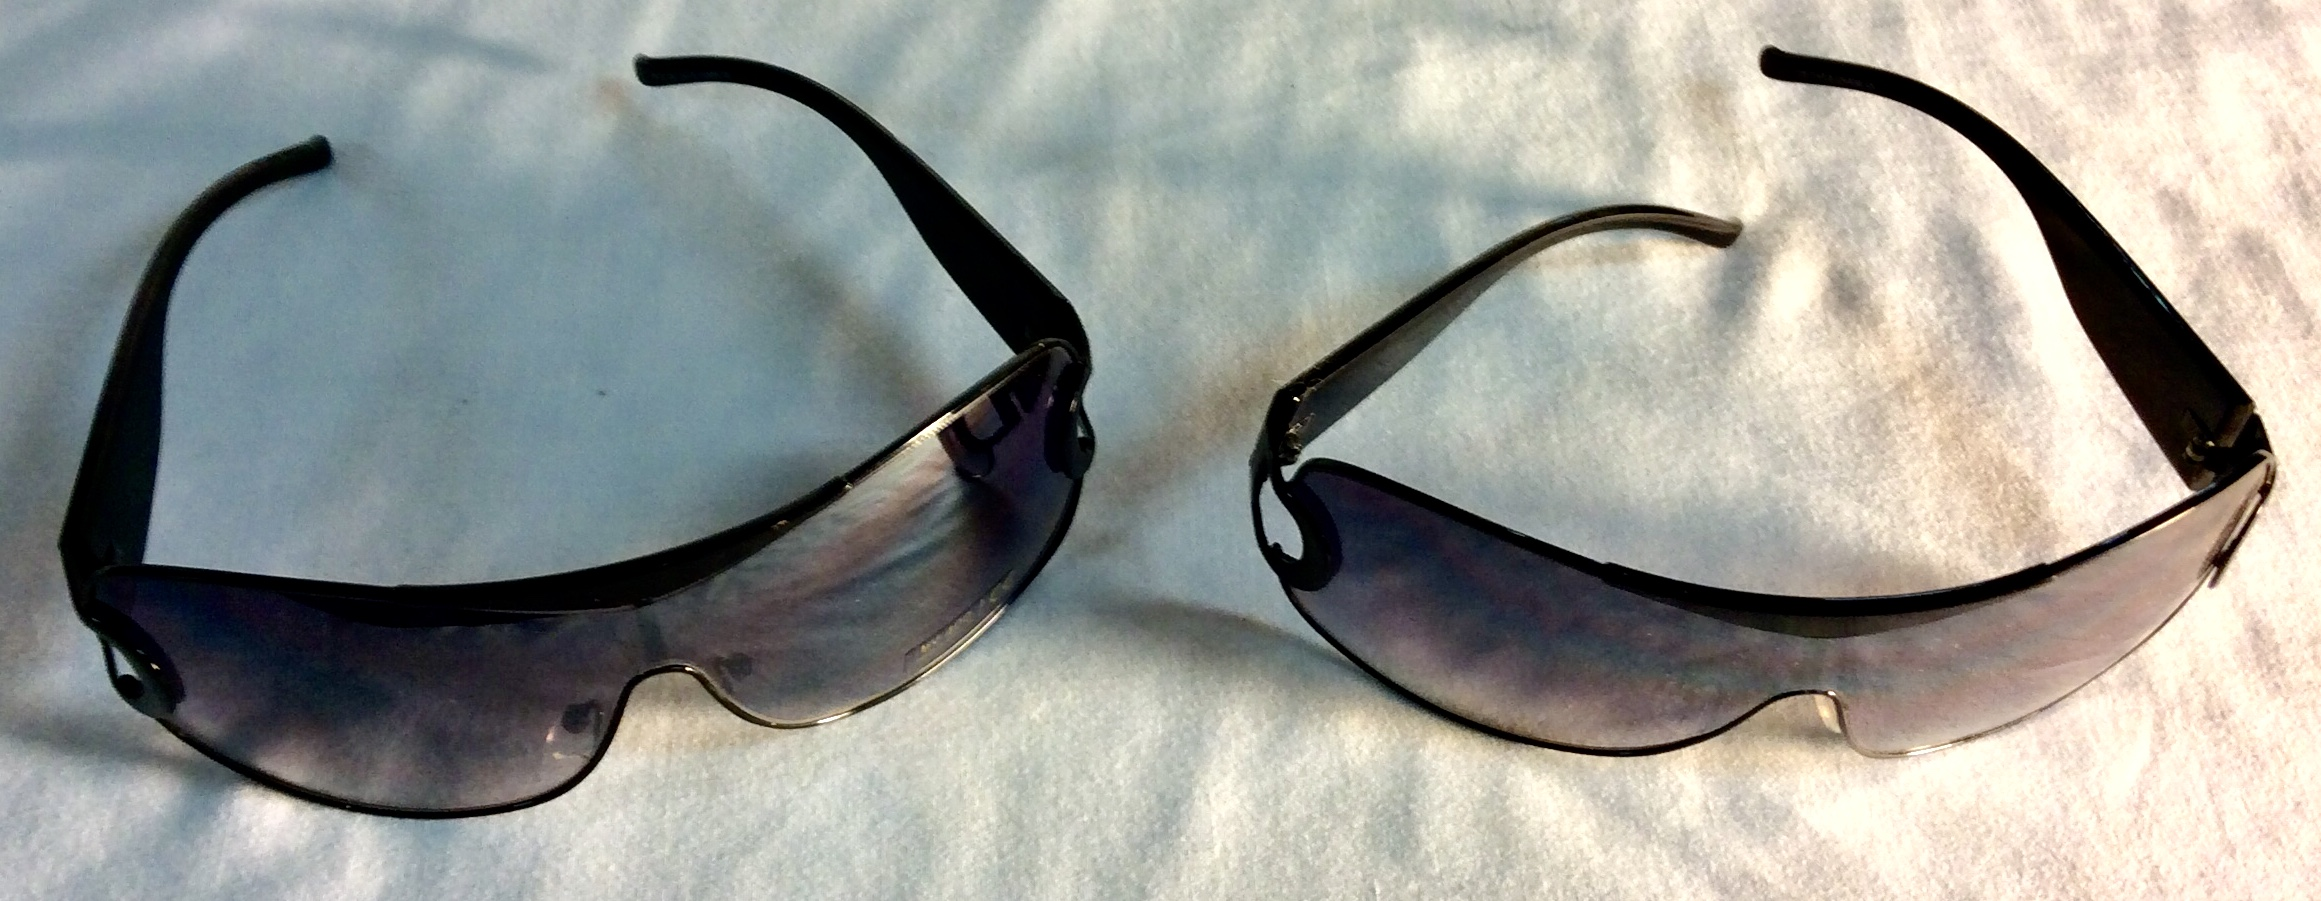 Black framed sunglasses